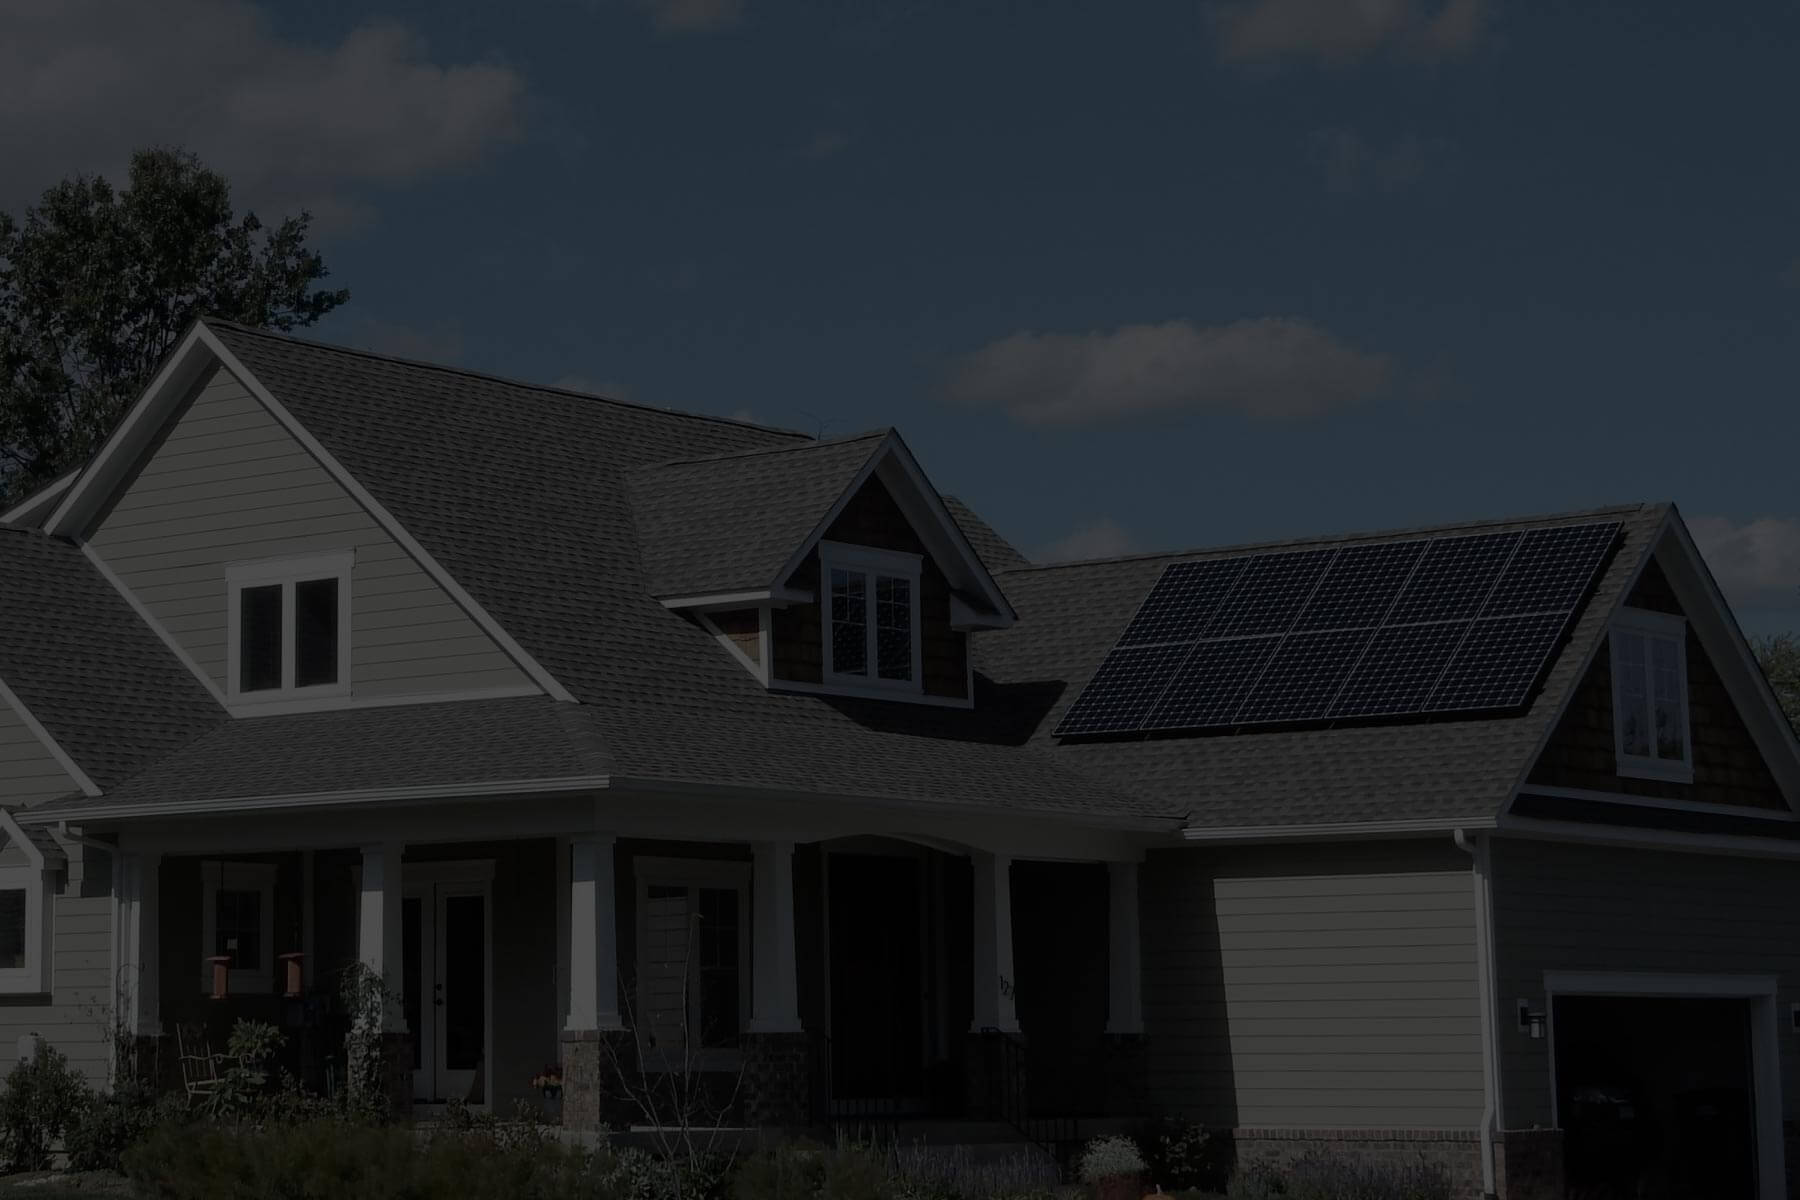 Outdoor view of contemporary home with solar panels with PowerPod system inside garage